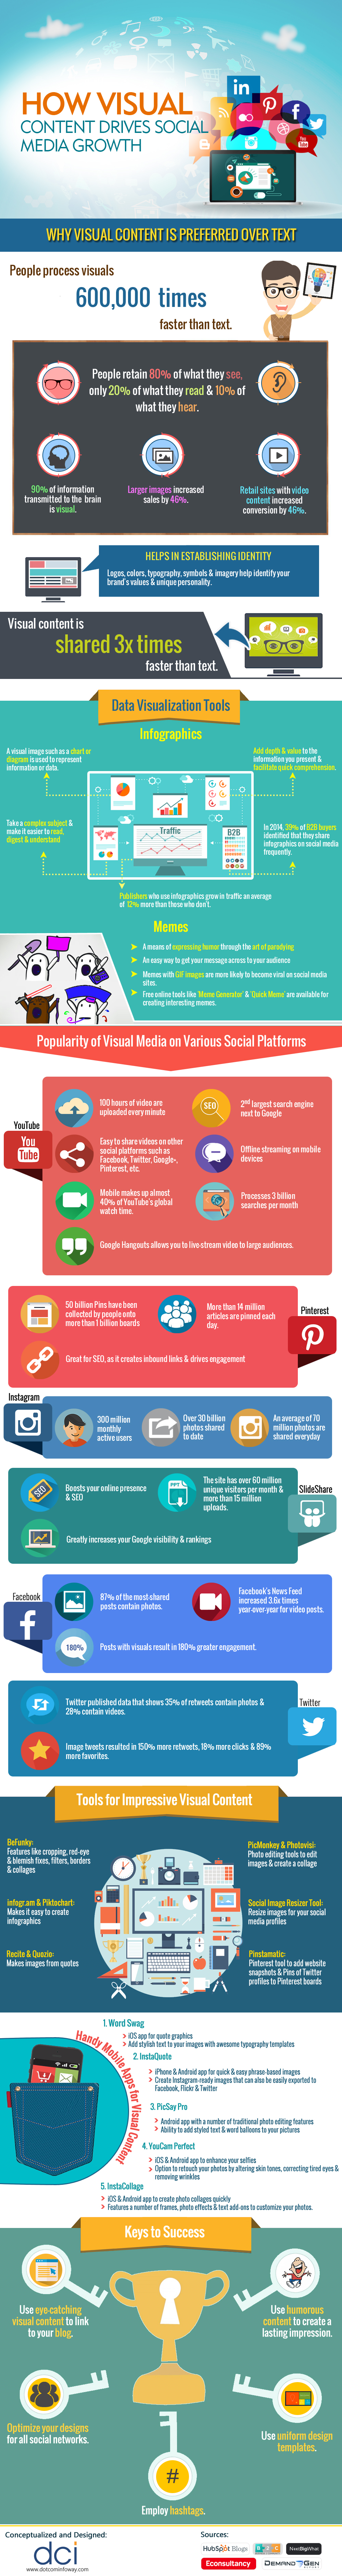 visual-content-for-social-media-presence-infographic